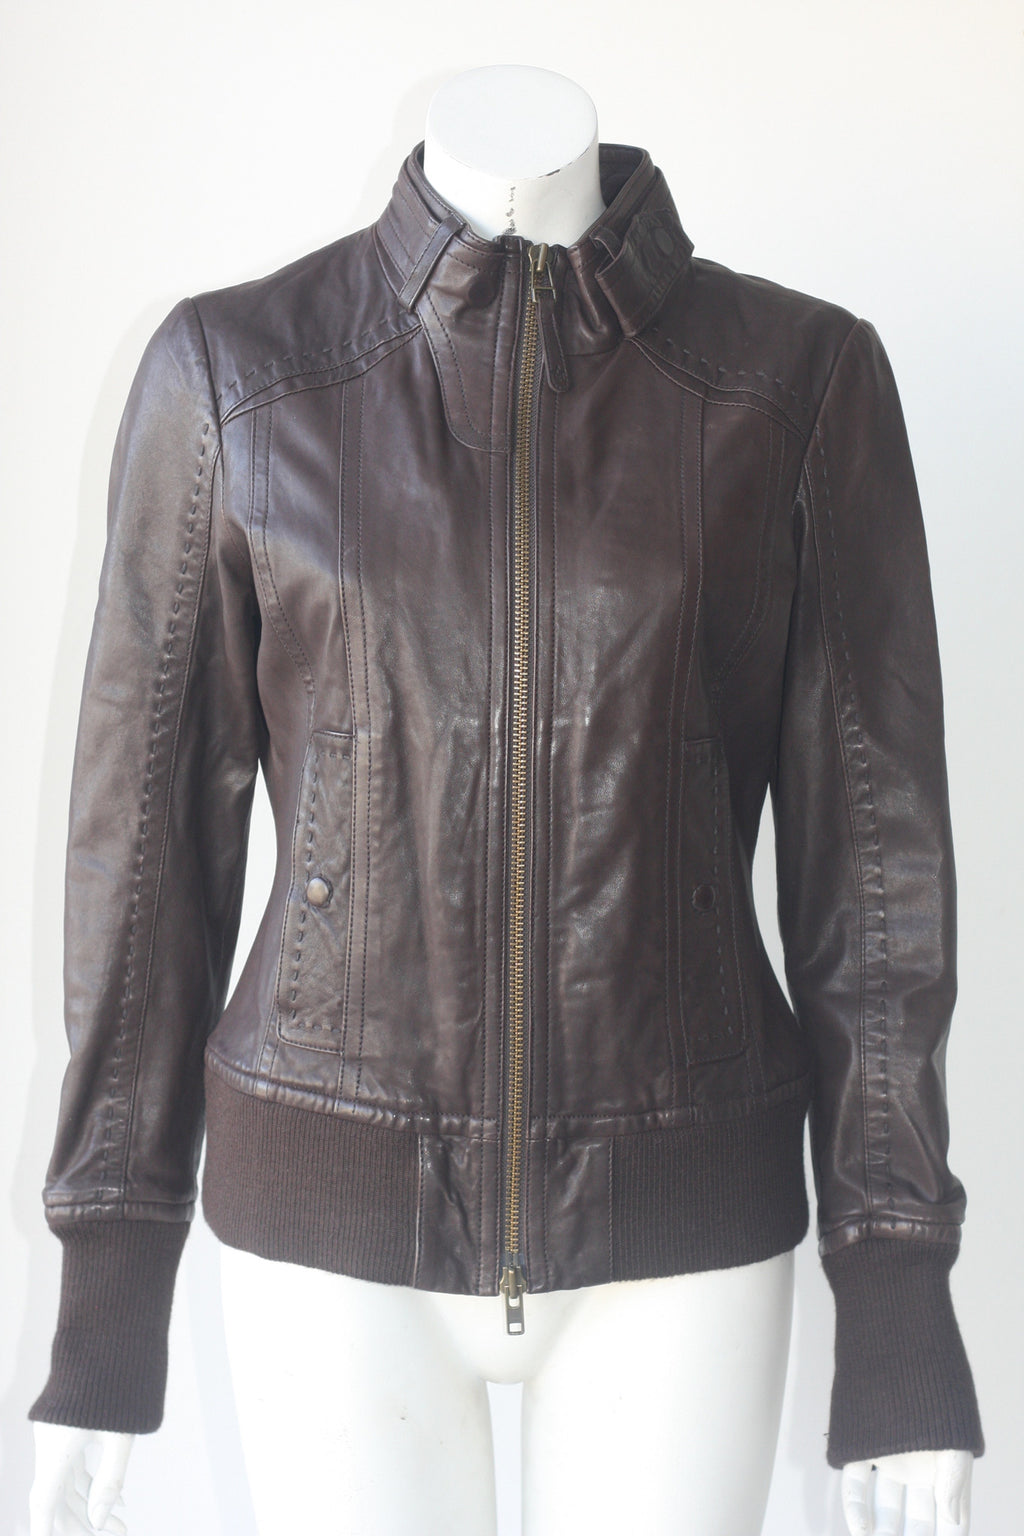 Aritzia Mackage Dark Brown Bomber Moto Leather Jacket - Joyce's Closet  - 1